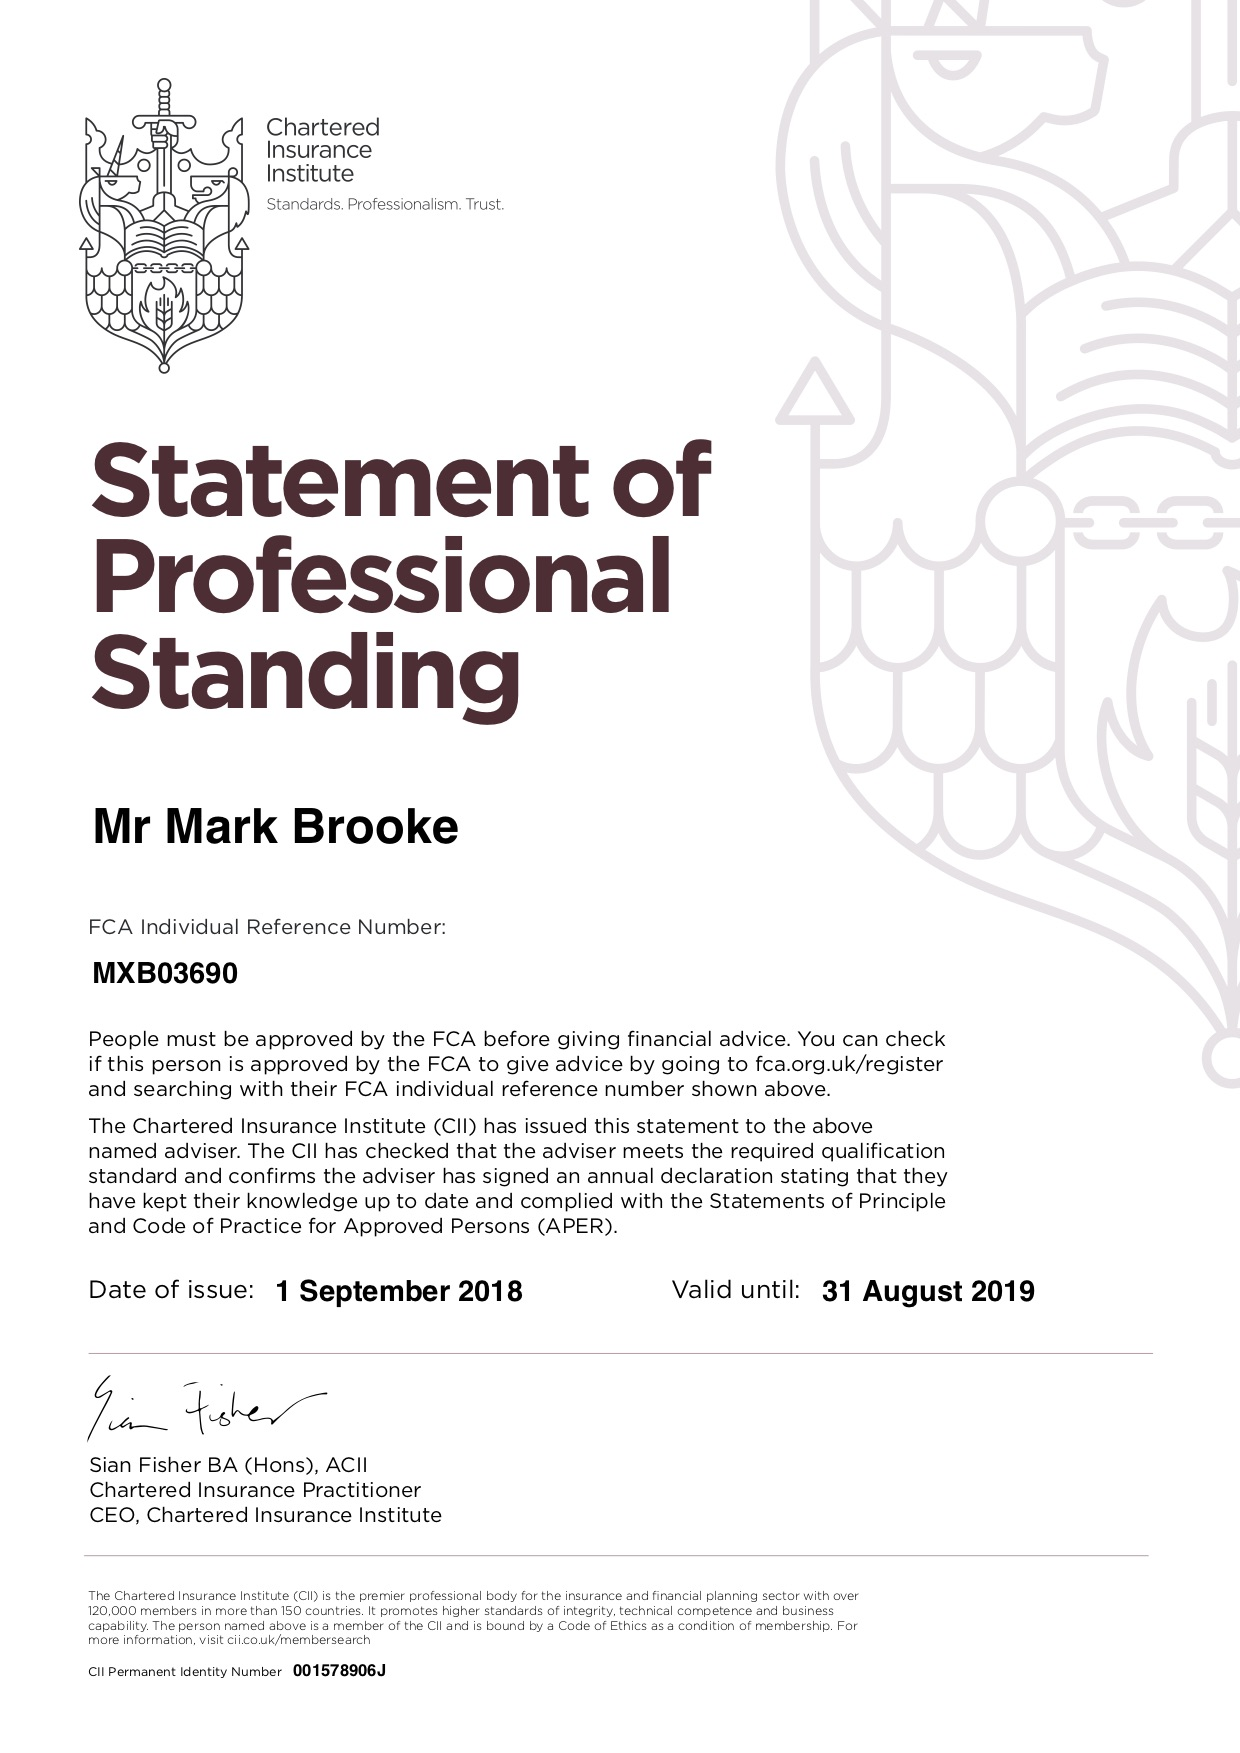 Statement of Professional Standing 2018 2019